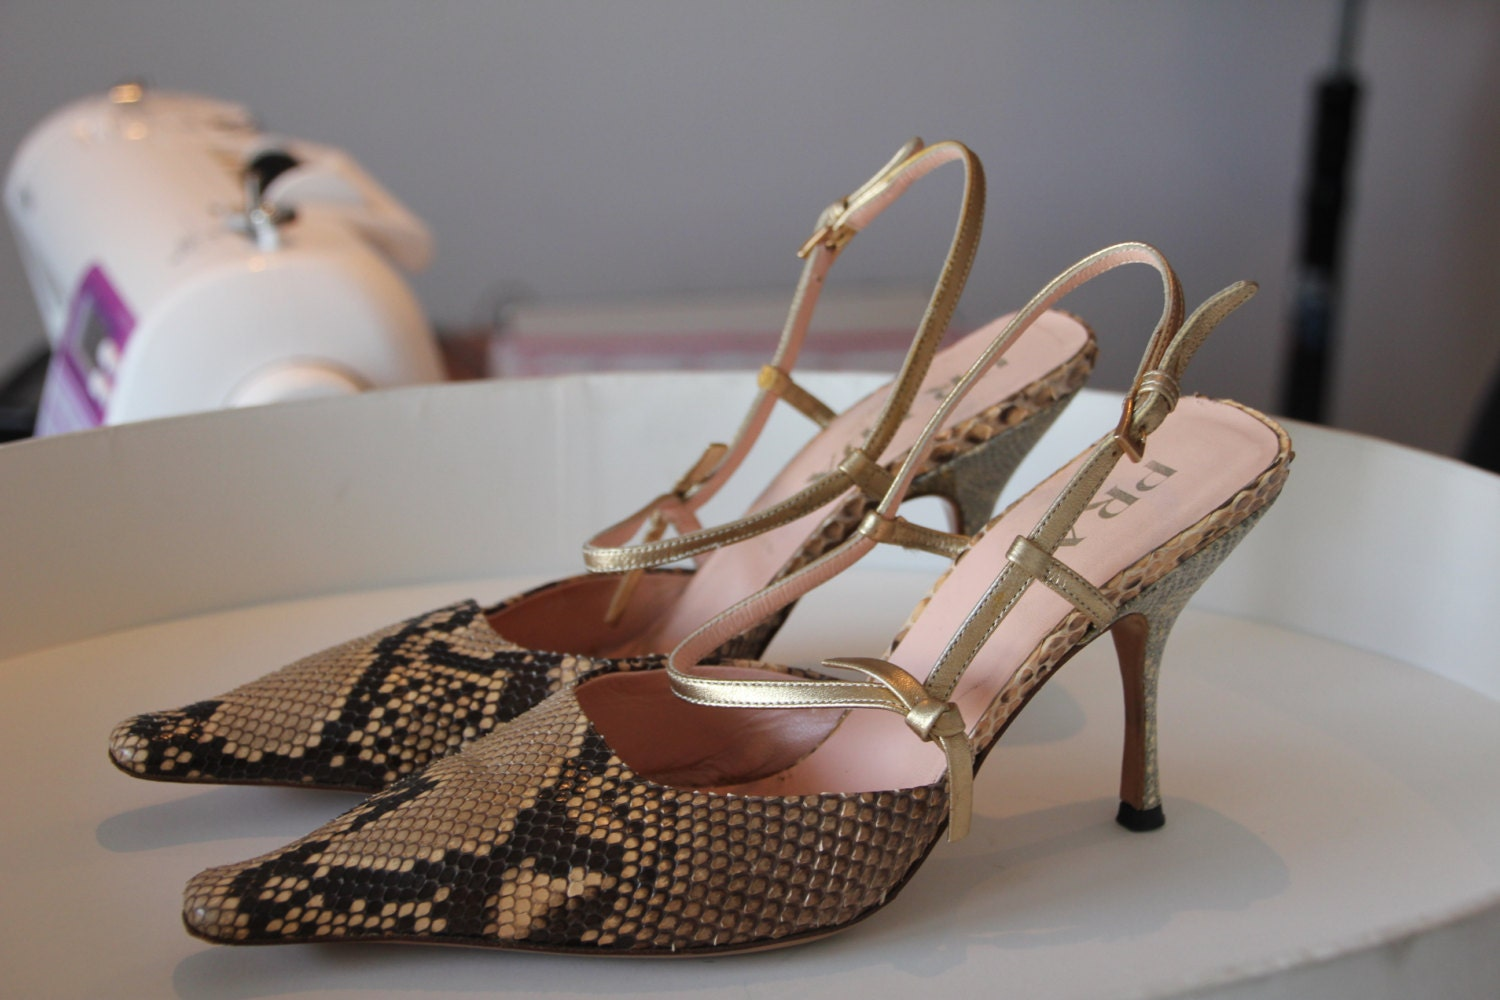 Vente Prada Prada Stiletto Vintage Shoes zzTxr